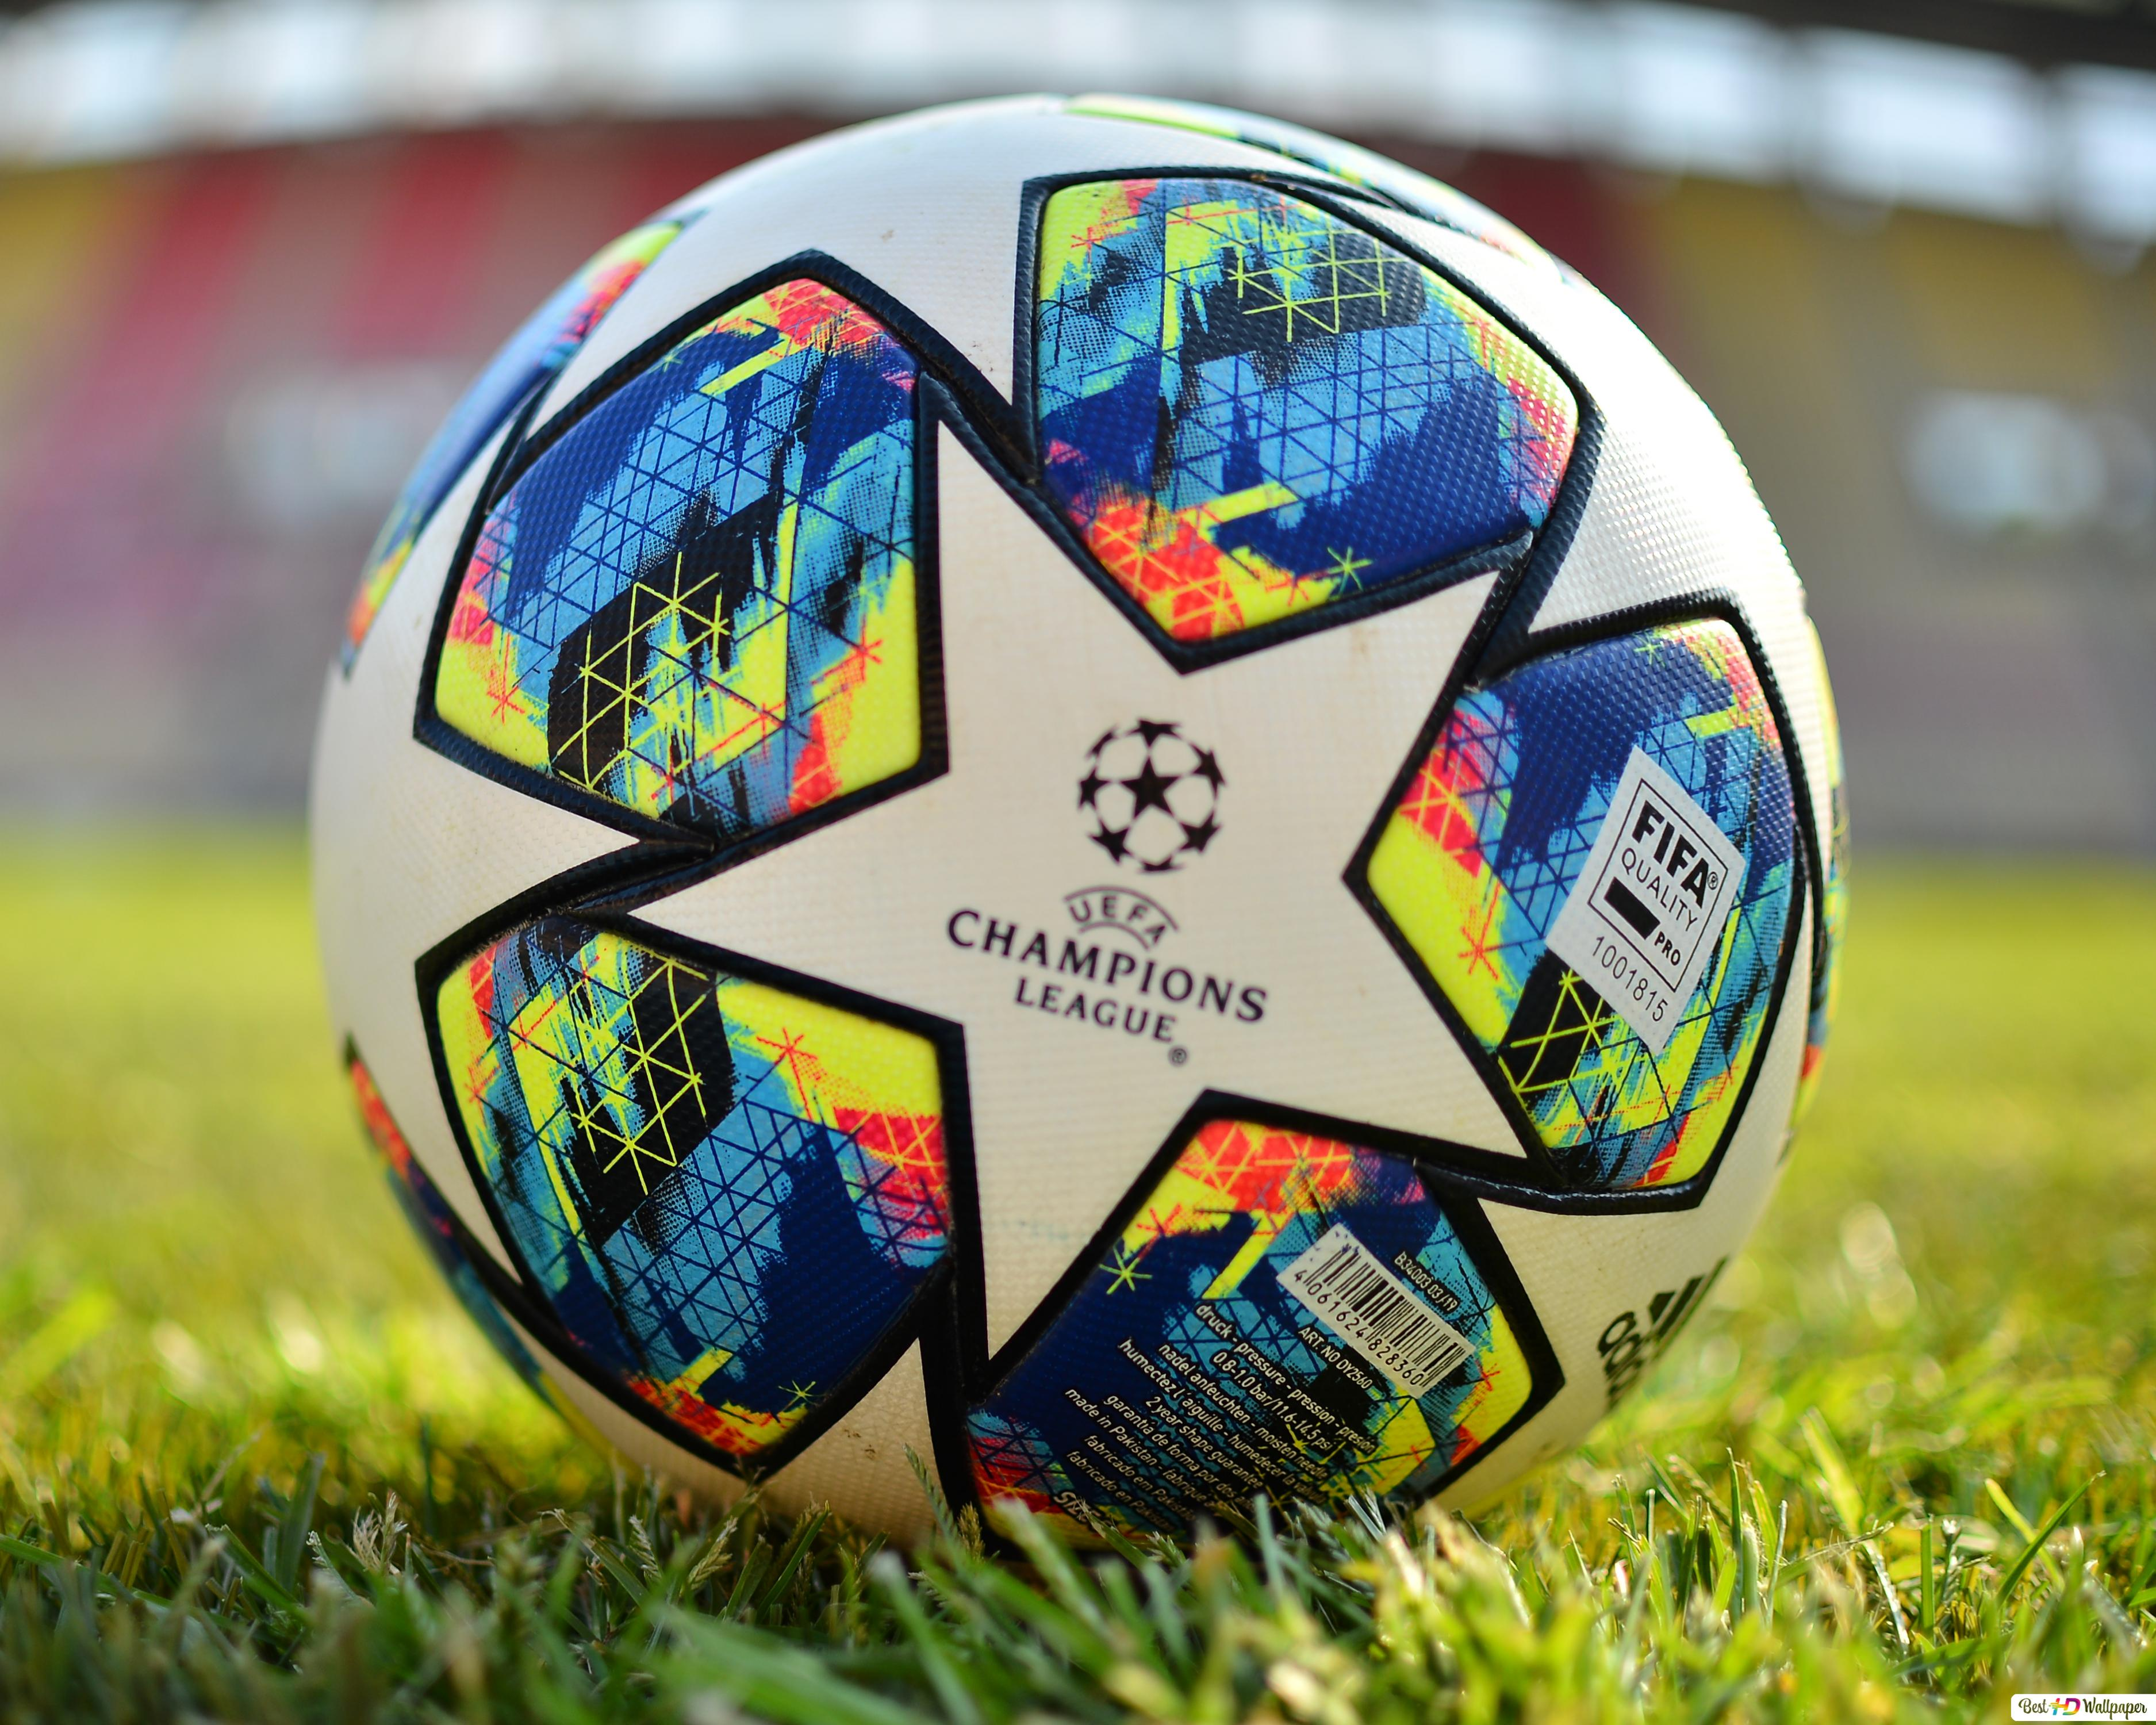 uefa champions league 2019 2020 official ball close up hd wallpaper download uefa champions league 2019 2020